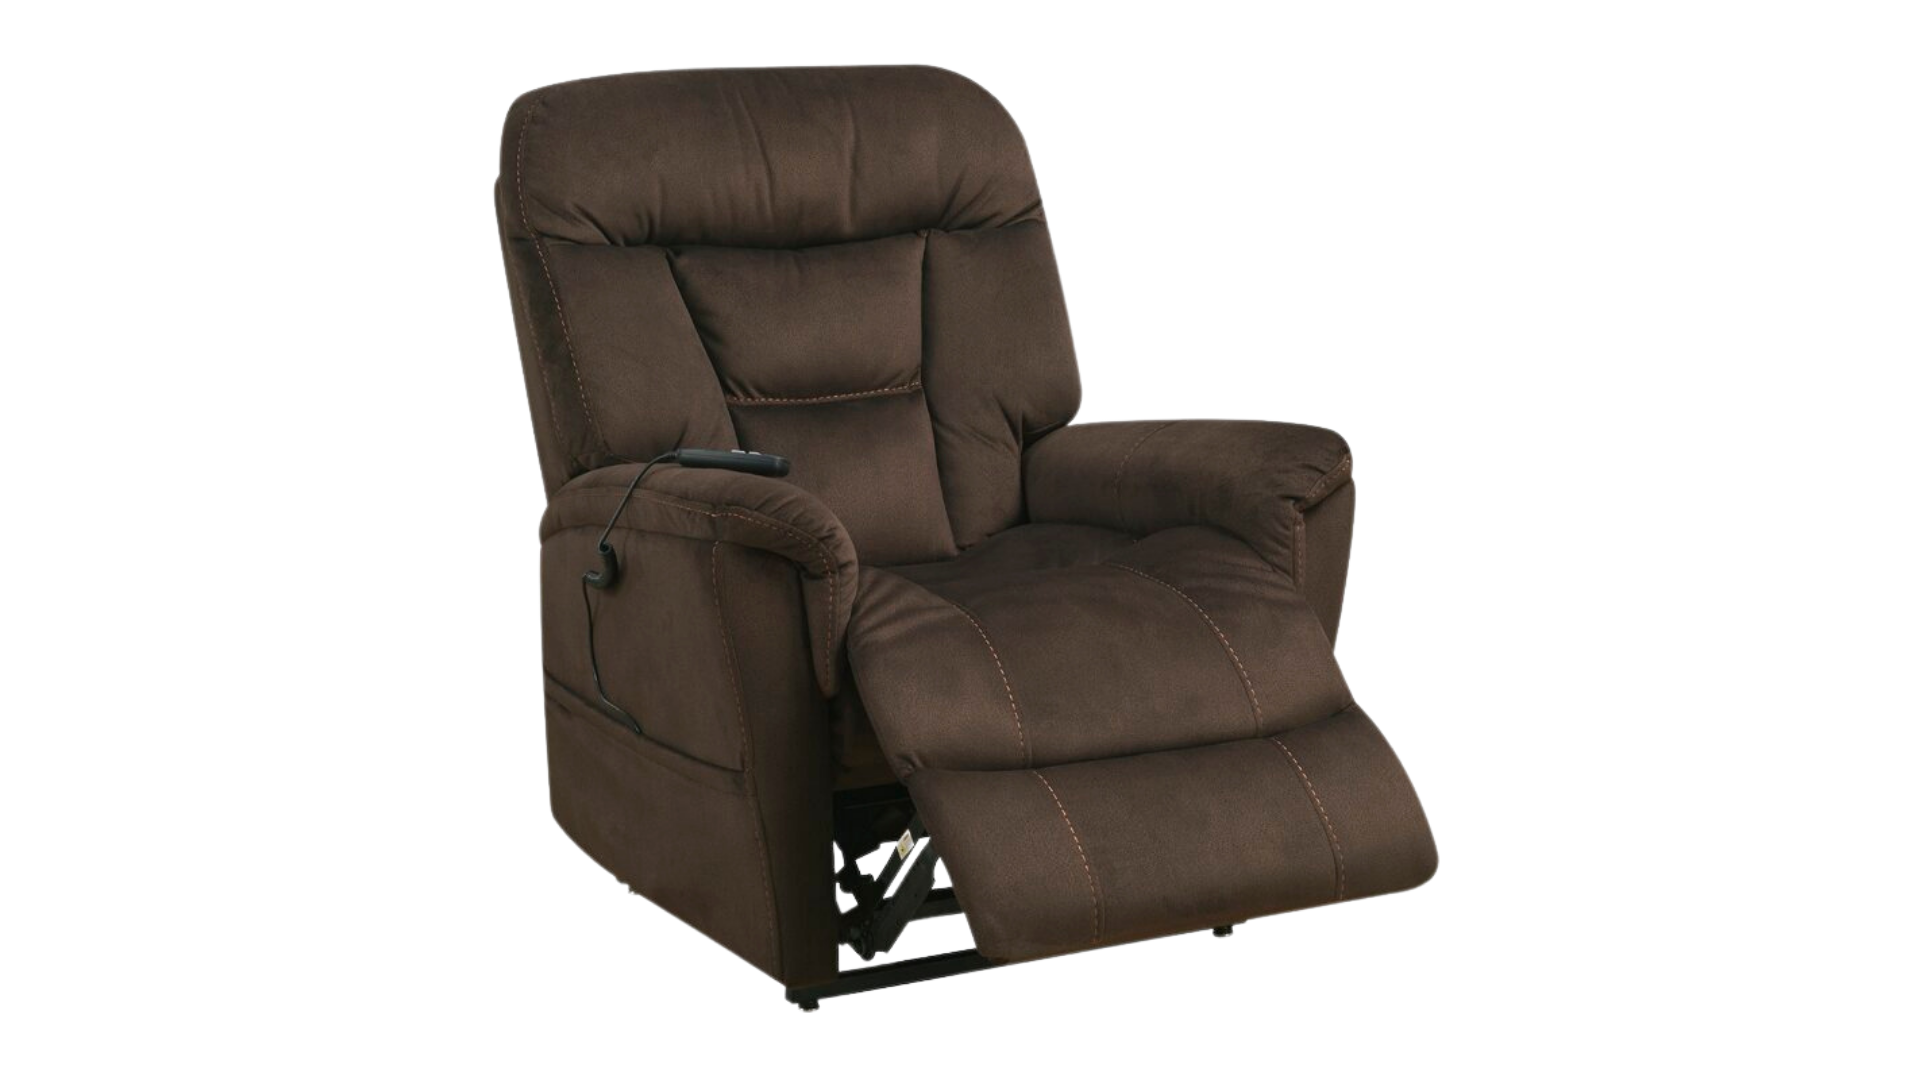 Fitzmaurice best recliner for sleep